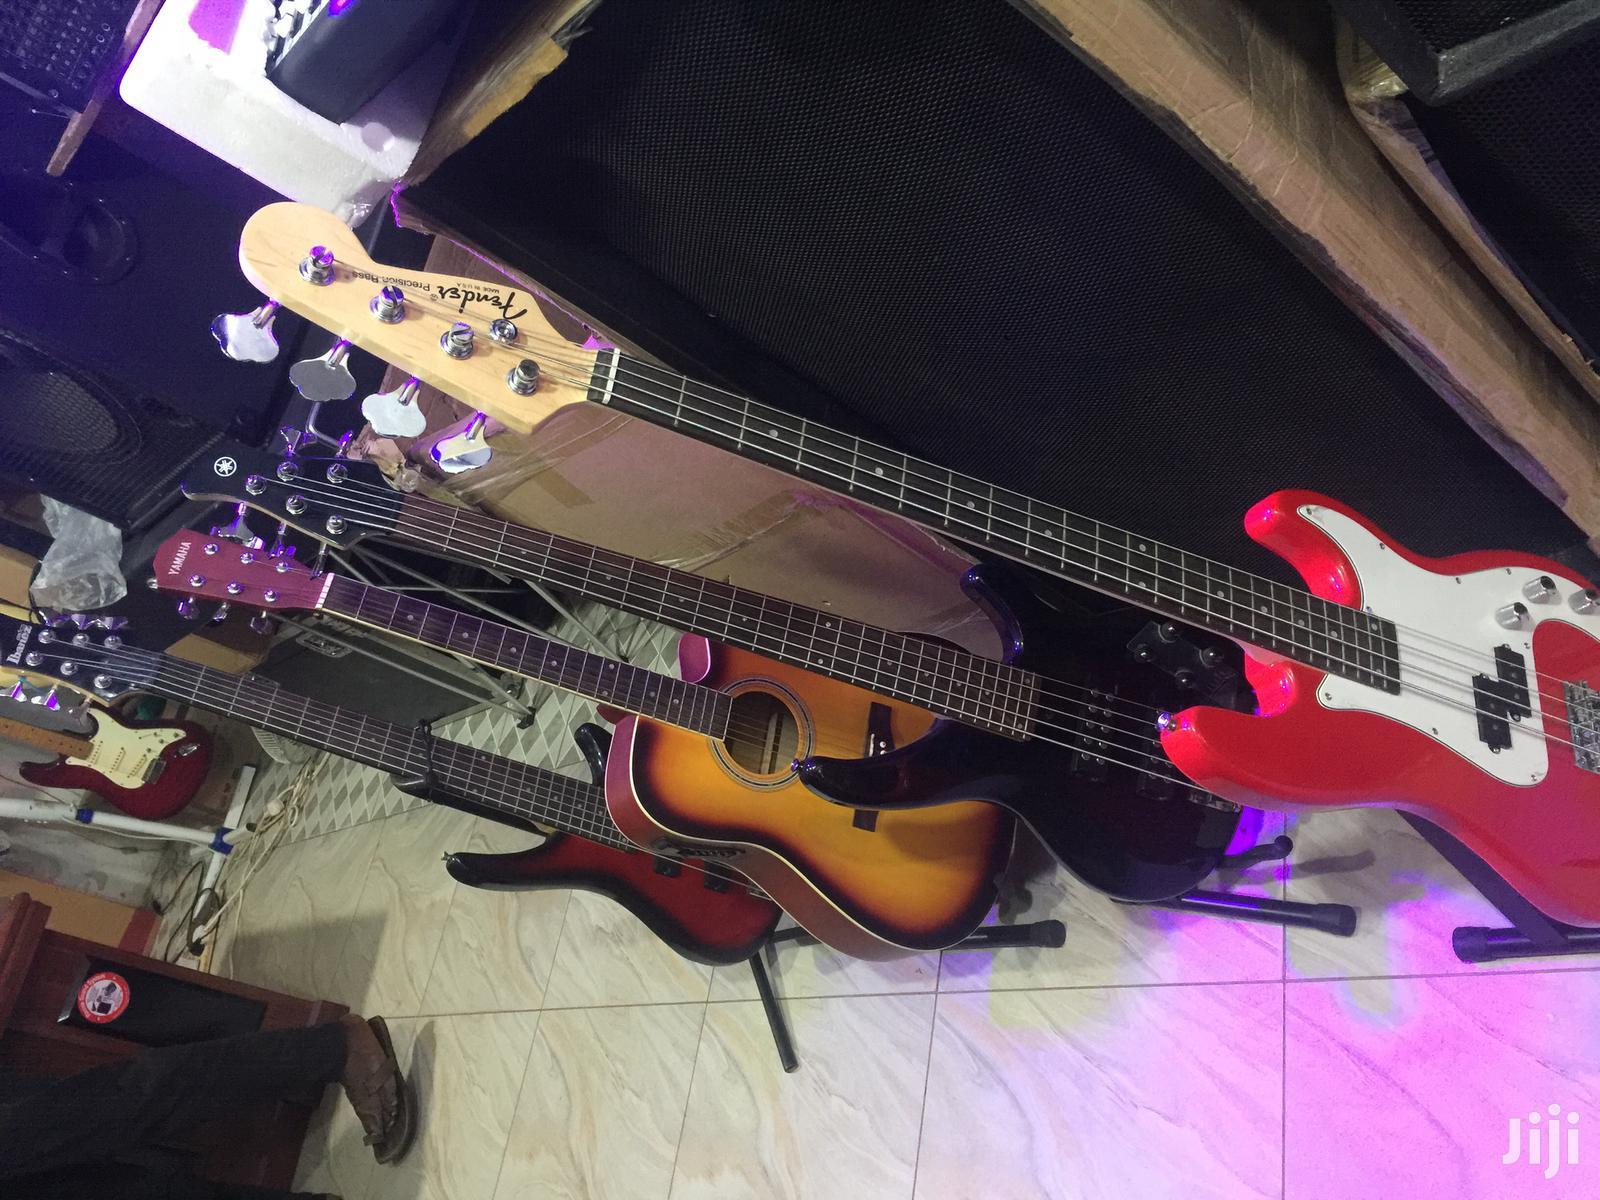 Acoustic Brand New Guitar and Drums | Musical Instruments & Gear for sale in Kampala, Central Region, Uganda